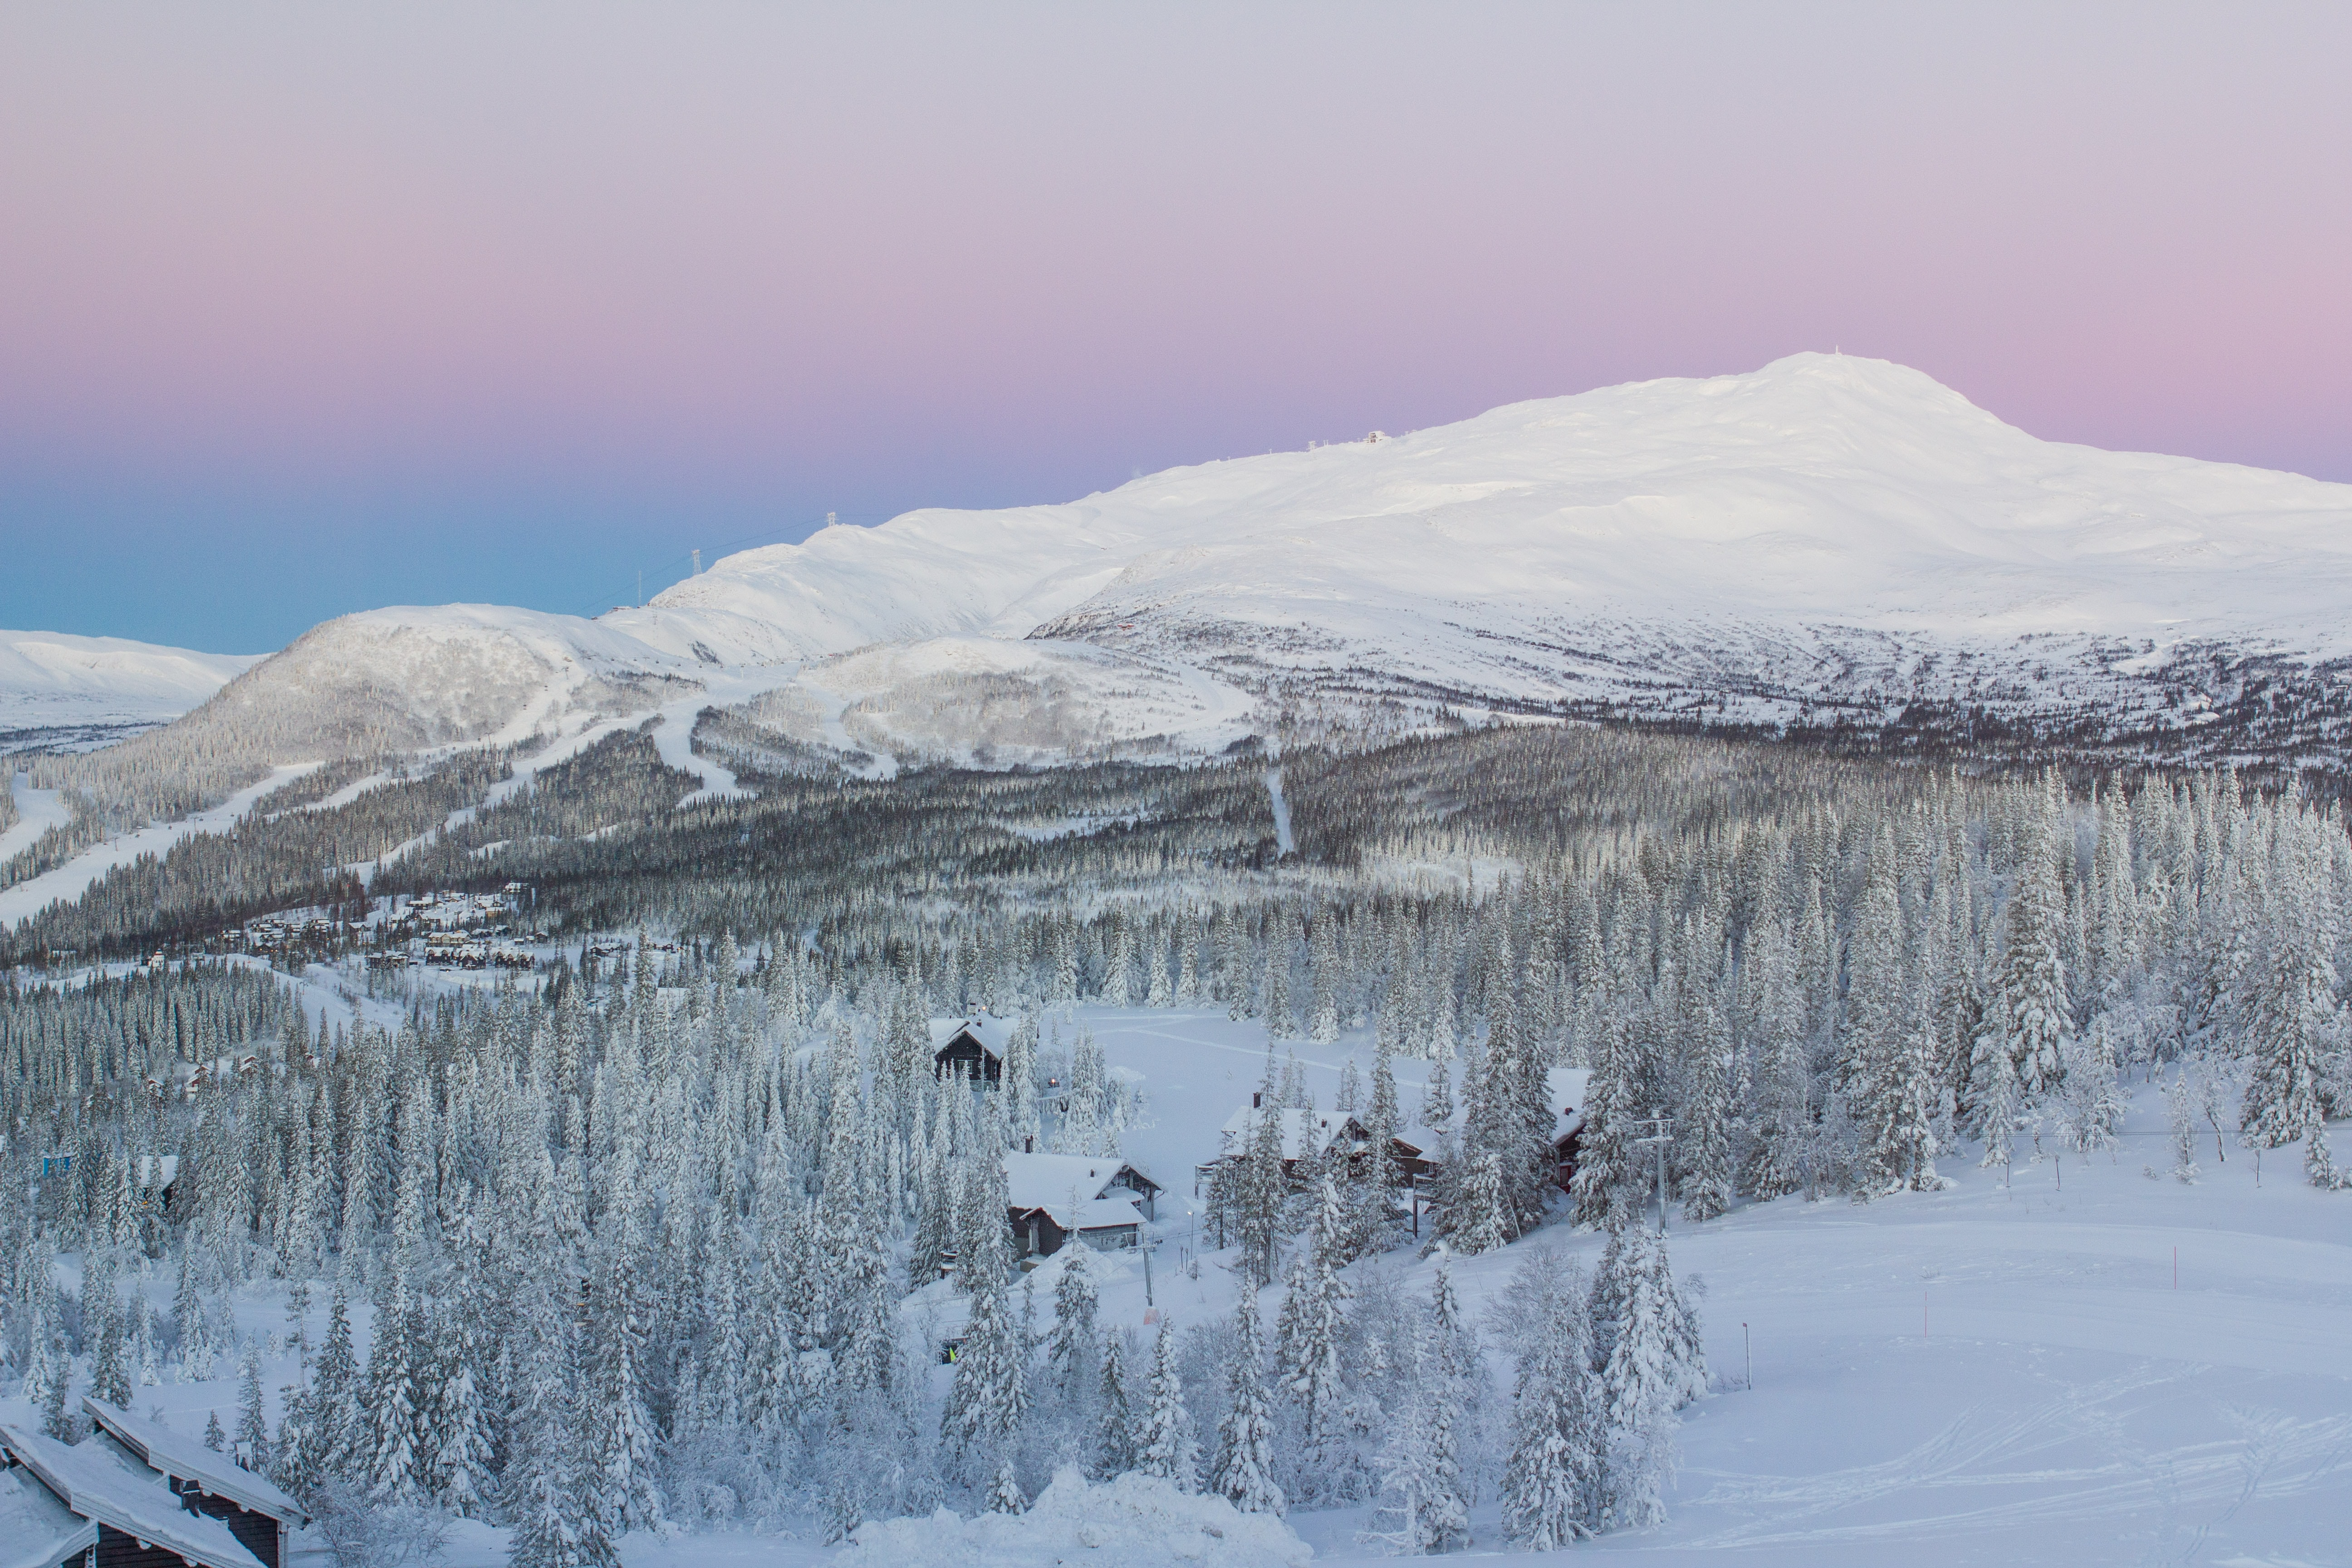 A pink and purple sunrise behind a snow laden mountain and trees near a homestead